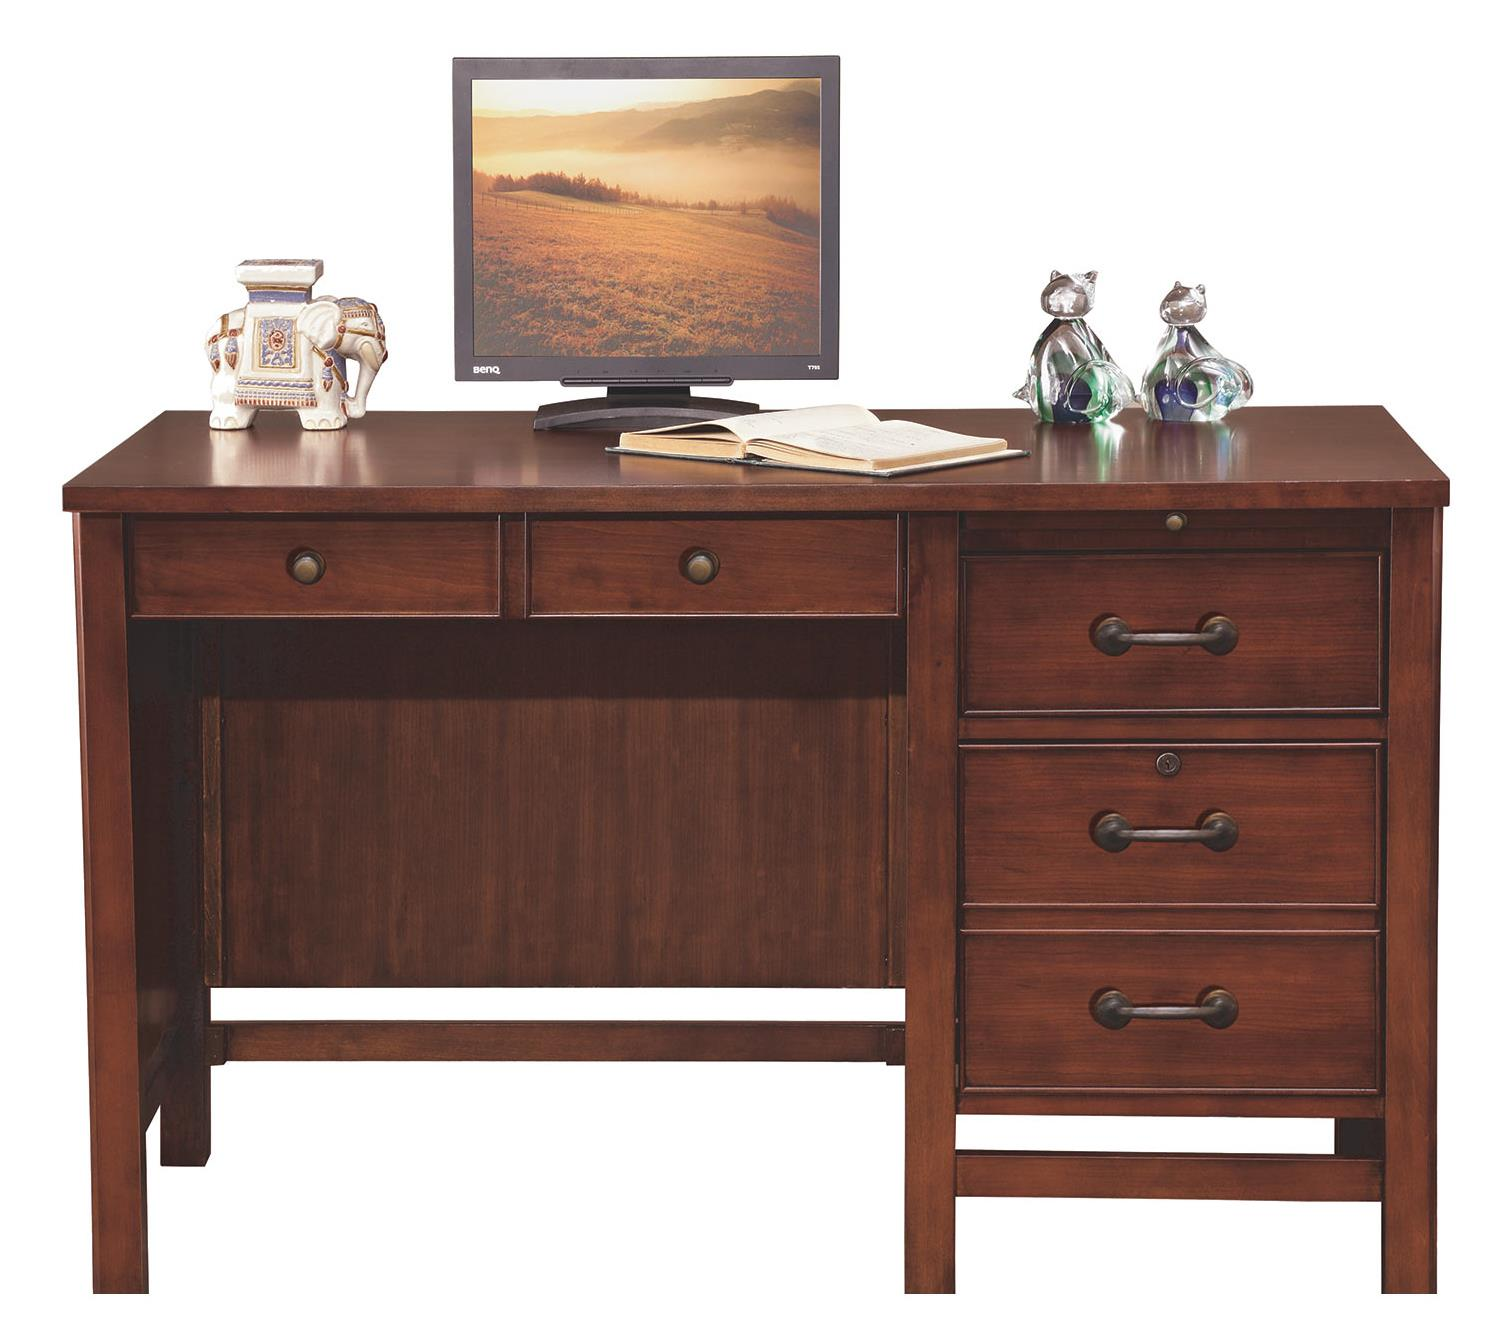 "Where Is Winners Only Furniture Made: Winners Only Willow Creek 48"" Flattop Desk Made Of Cherry"